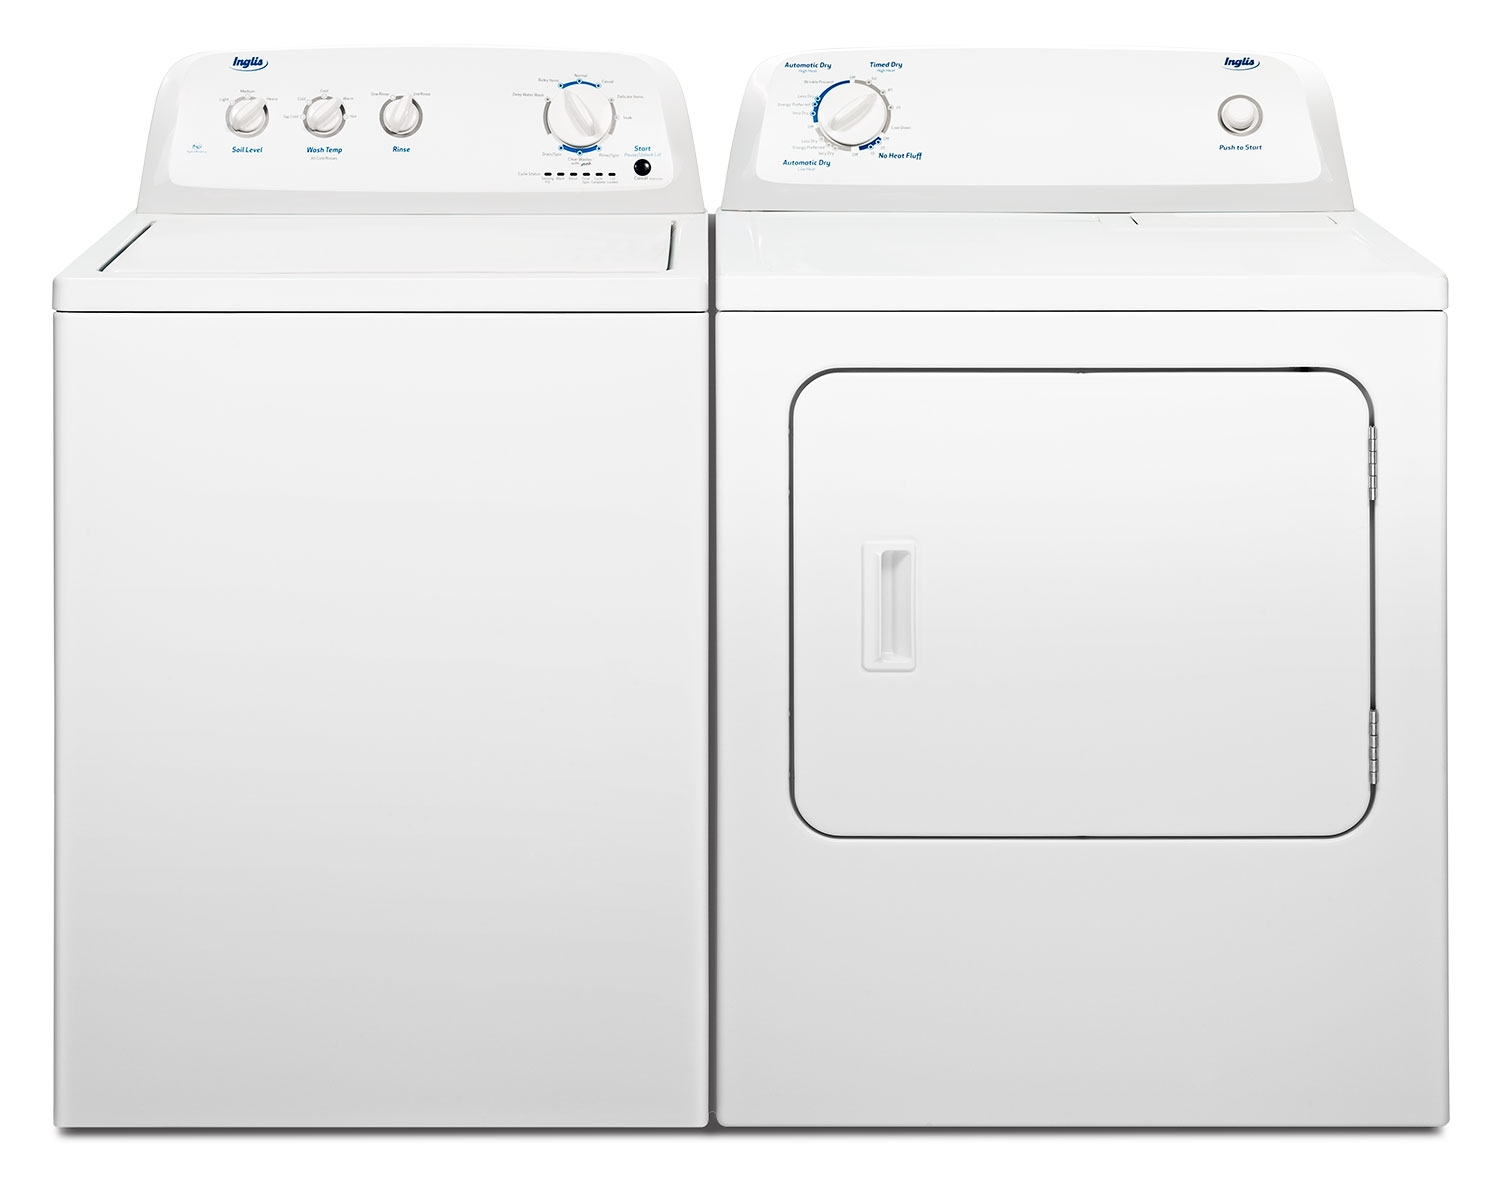 High Efficiency Washers And Dryers Inglis 41 High Efficiency Washer And 65 Cu Ft Dryer Freedom